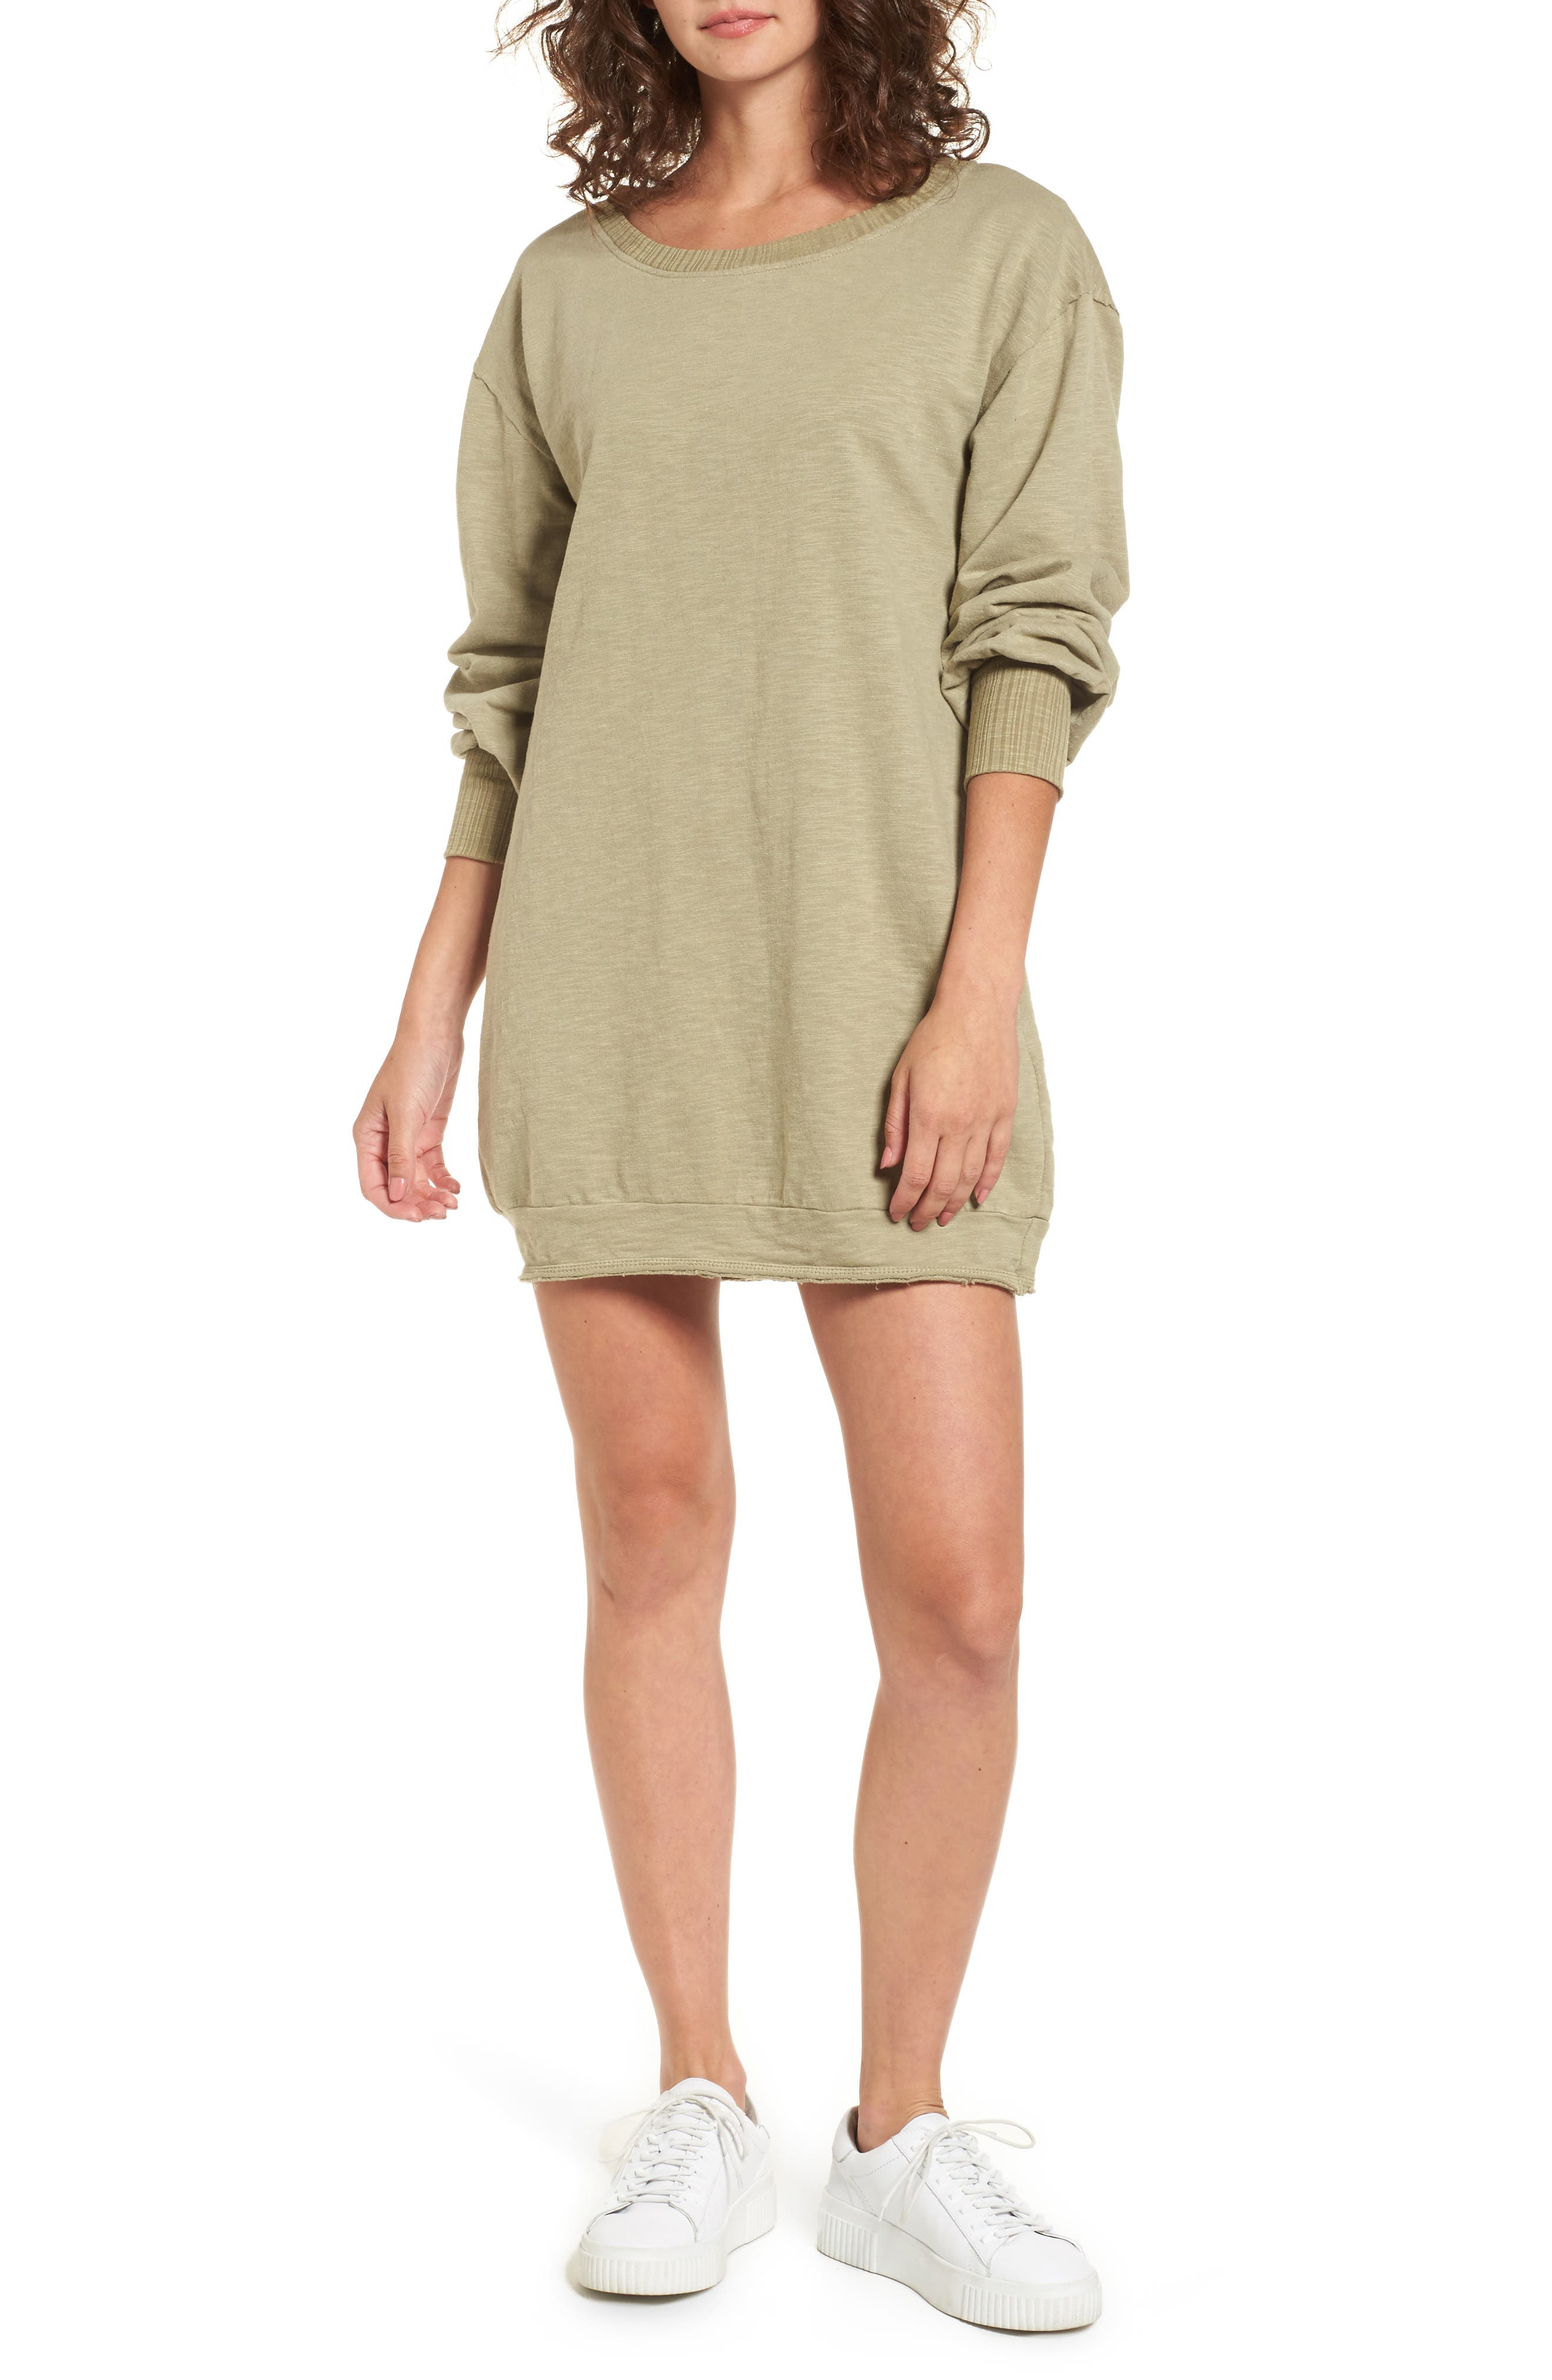 Somedays Lovin Mountains Fade Sweatshirt Dress